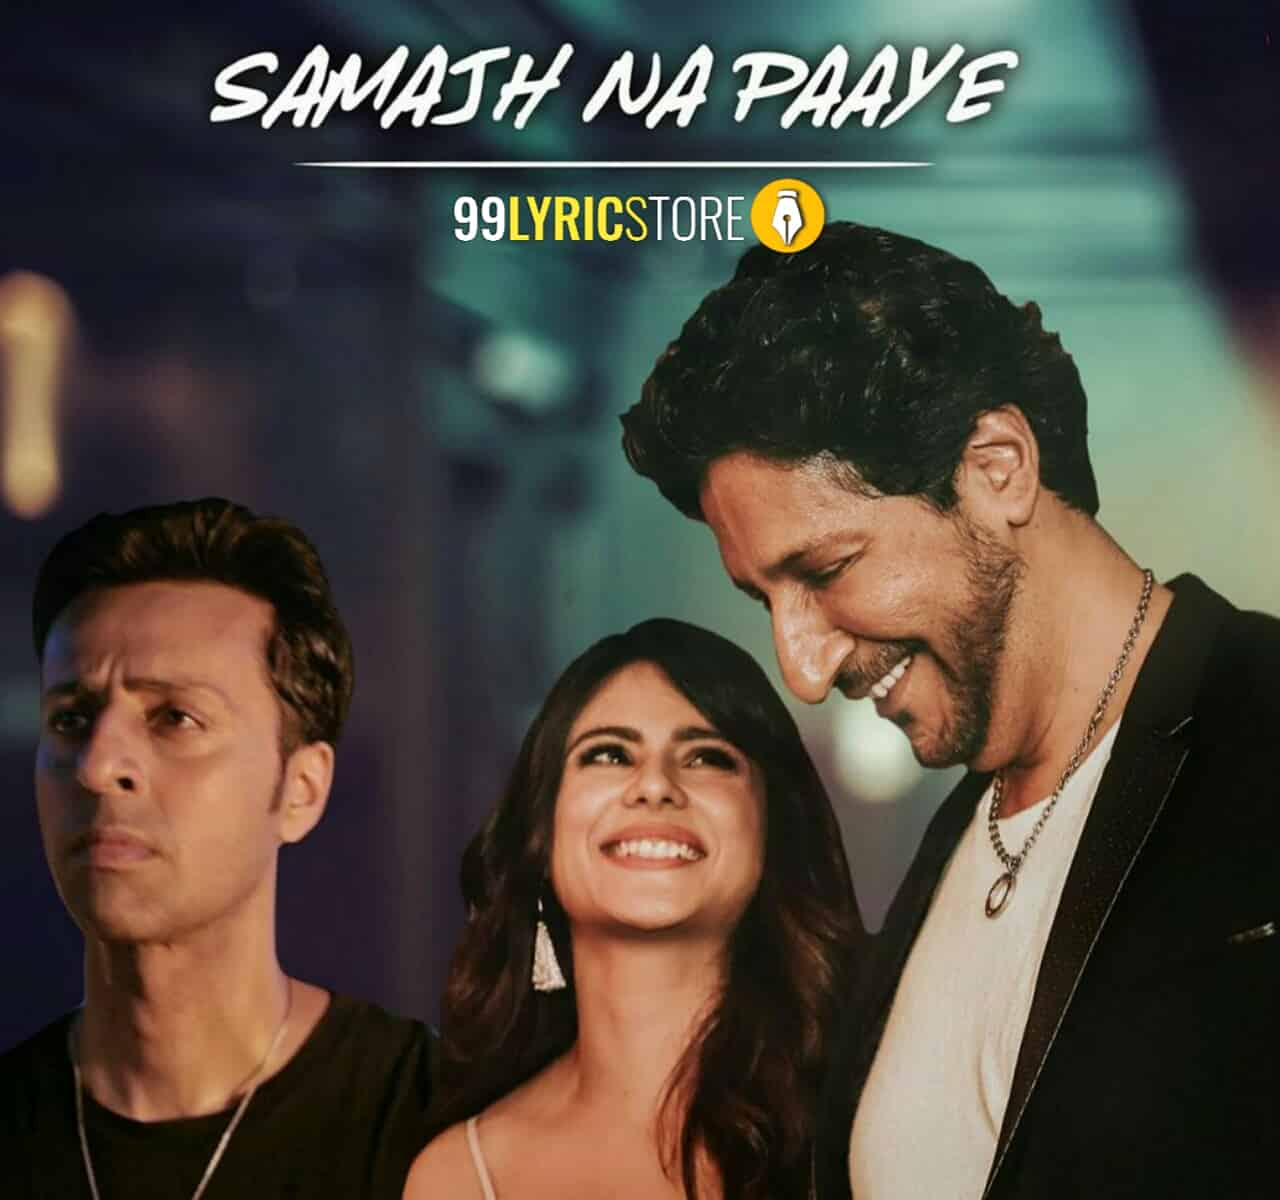 Samajh Na Paaye Hindi song sung by salim merchant